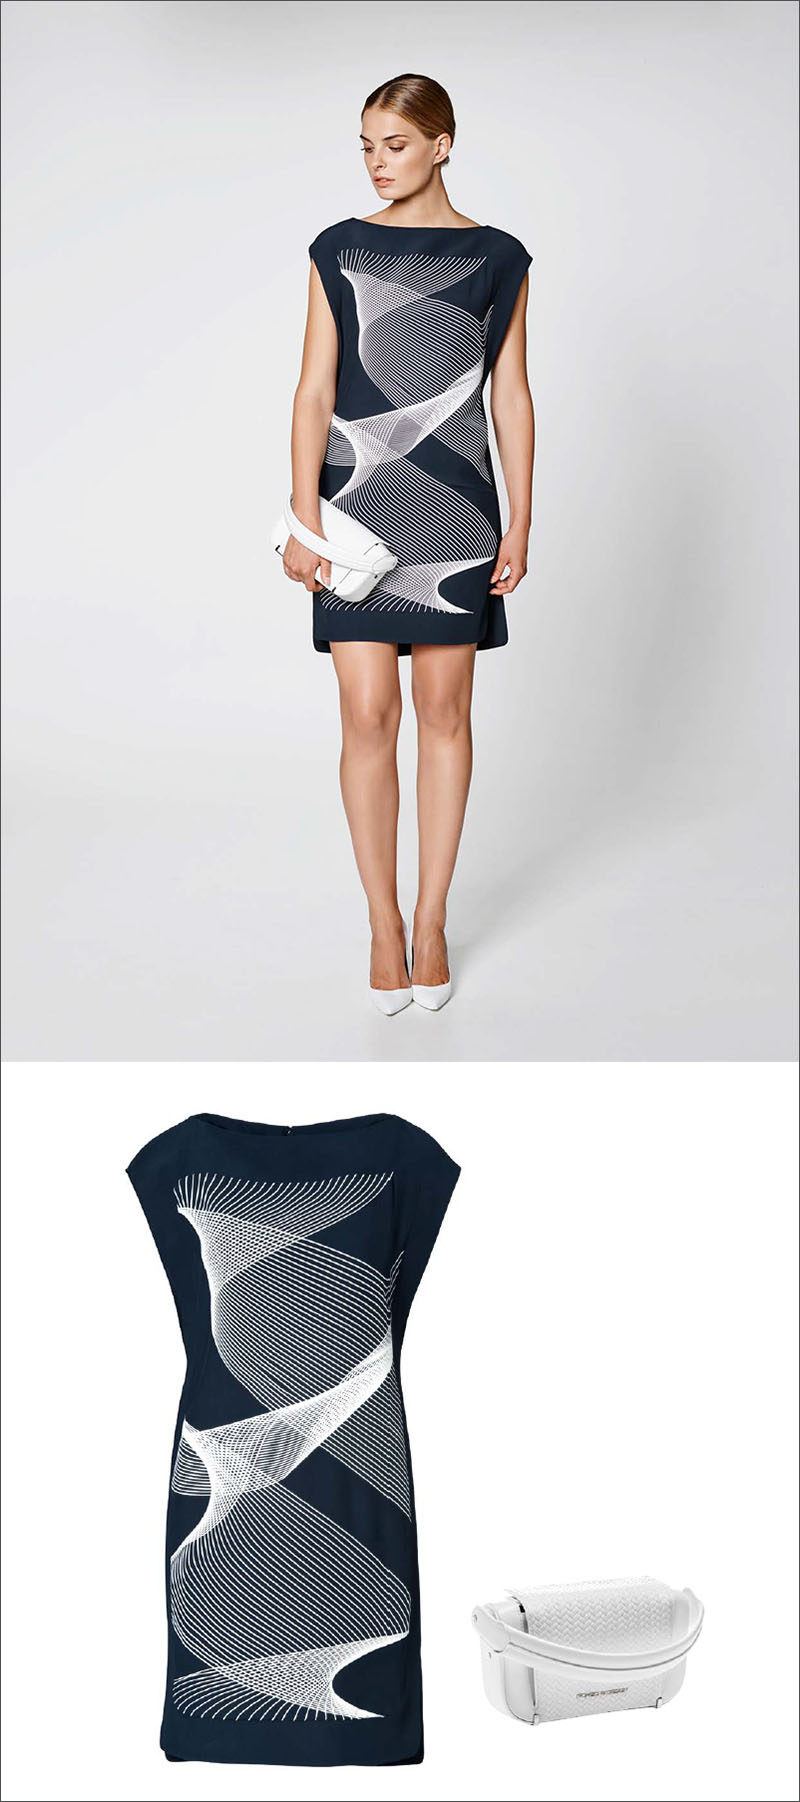 Women's Fashion Ideas - 12 Womens Outfits From Porsche Design's 2017 Spring/Summer Collection // This navy and white dress with a wave-like pattern has been paired with a simple white bag to create a sophisticated spring or summer outfit.